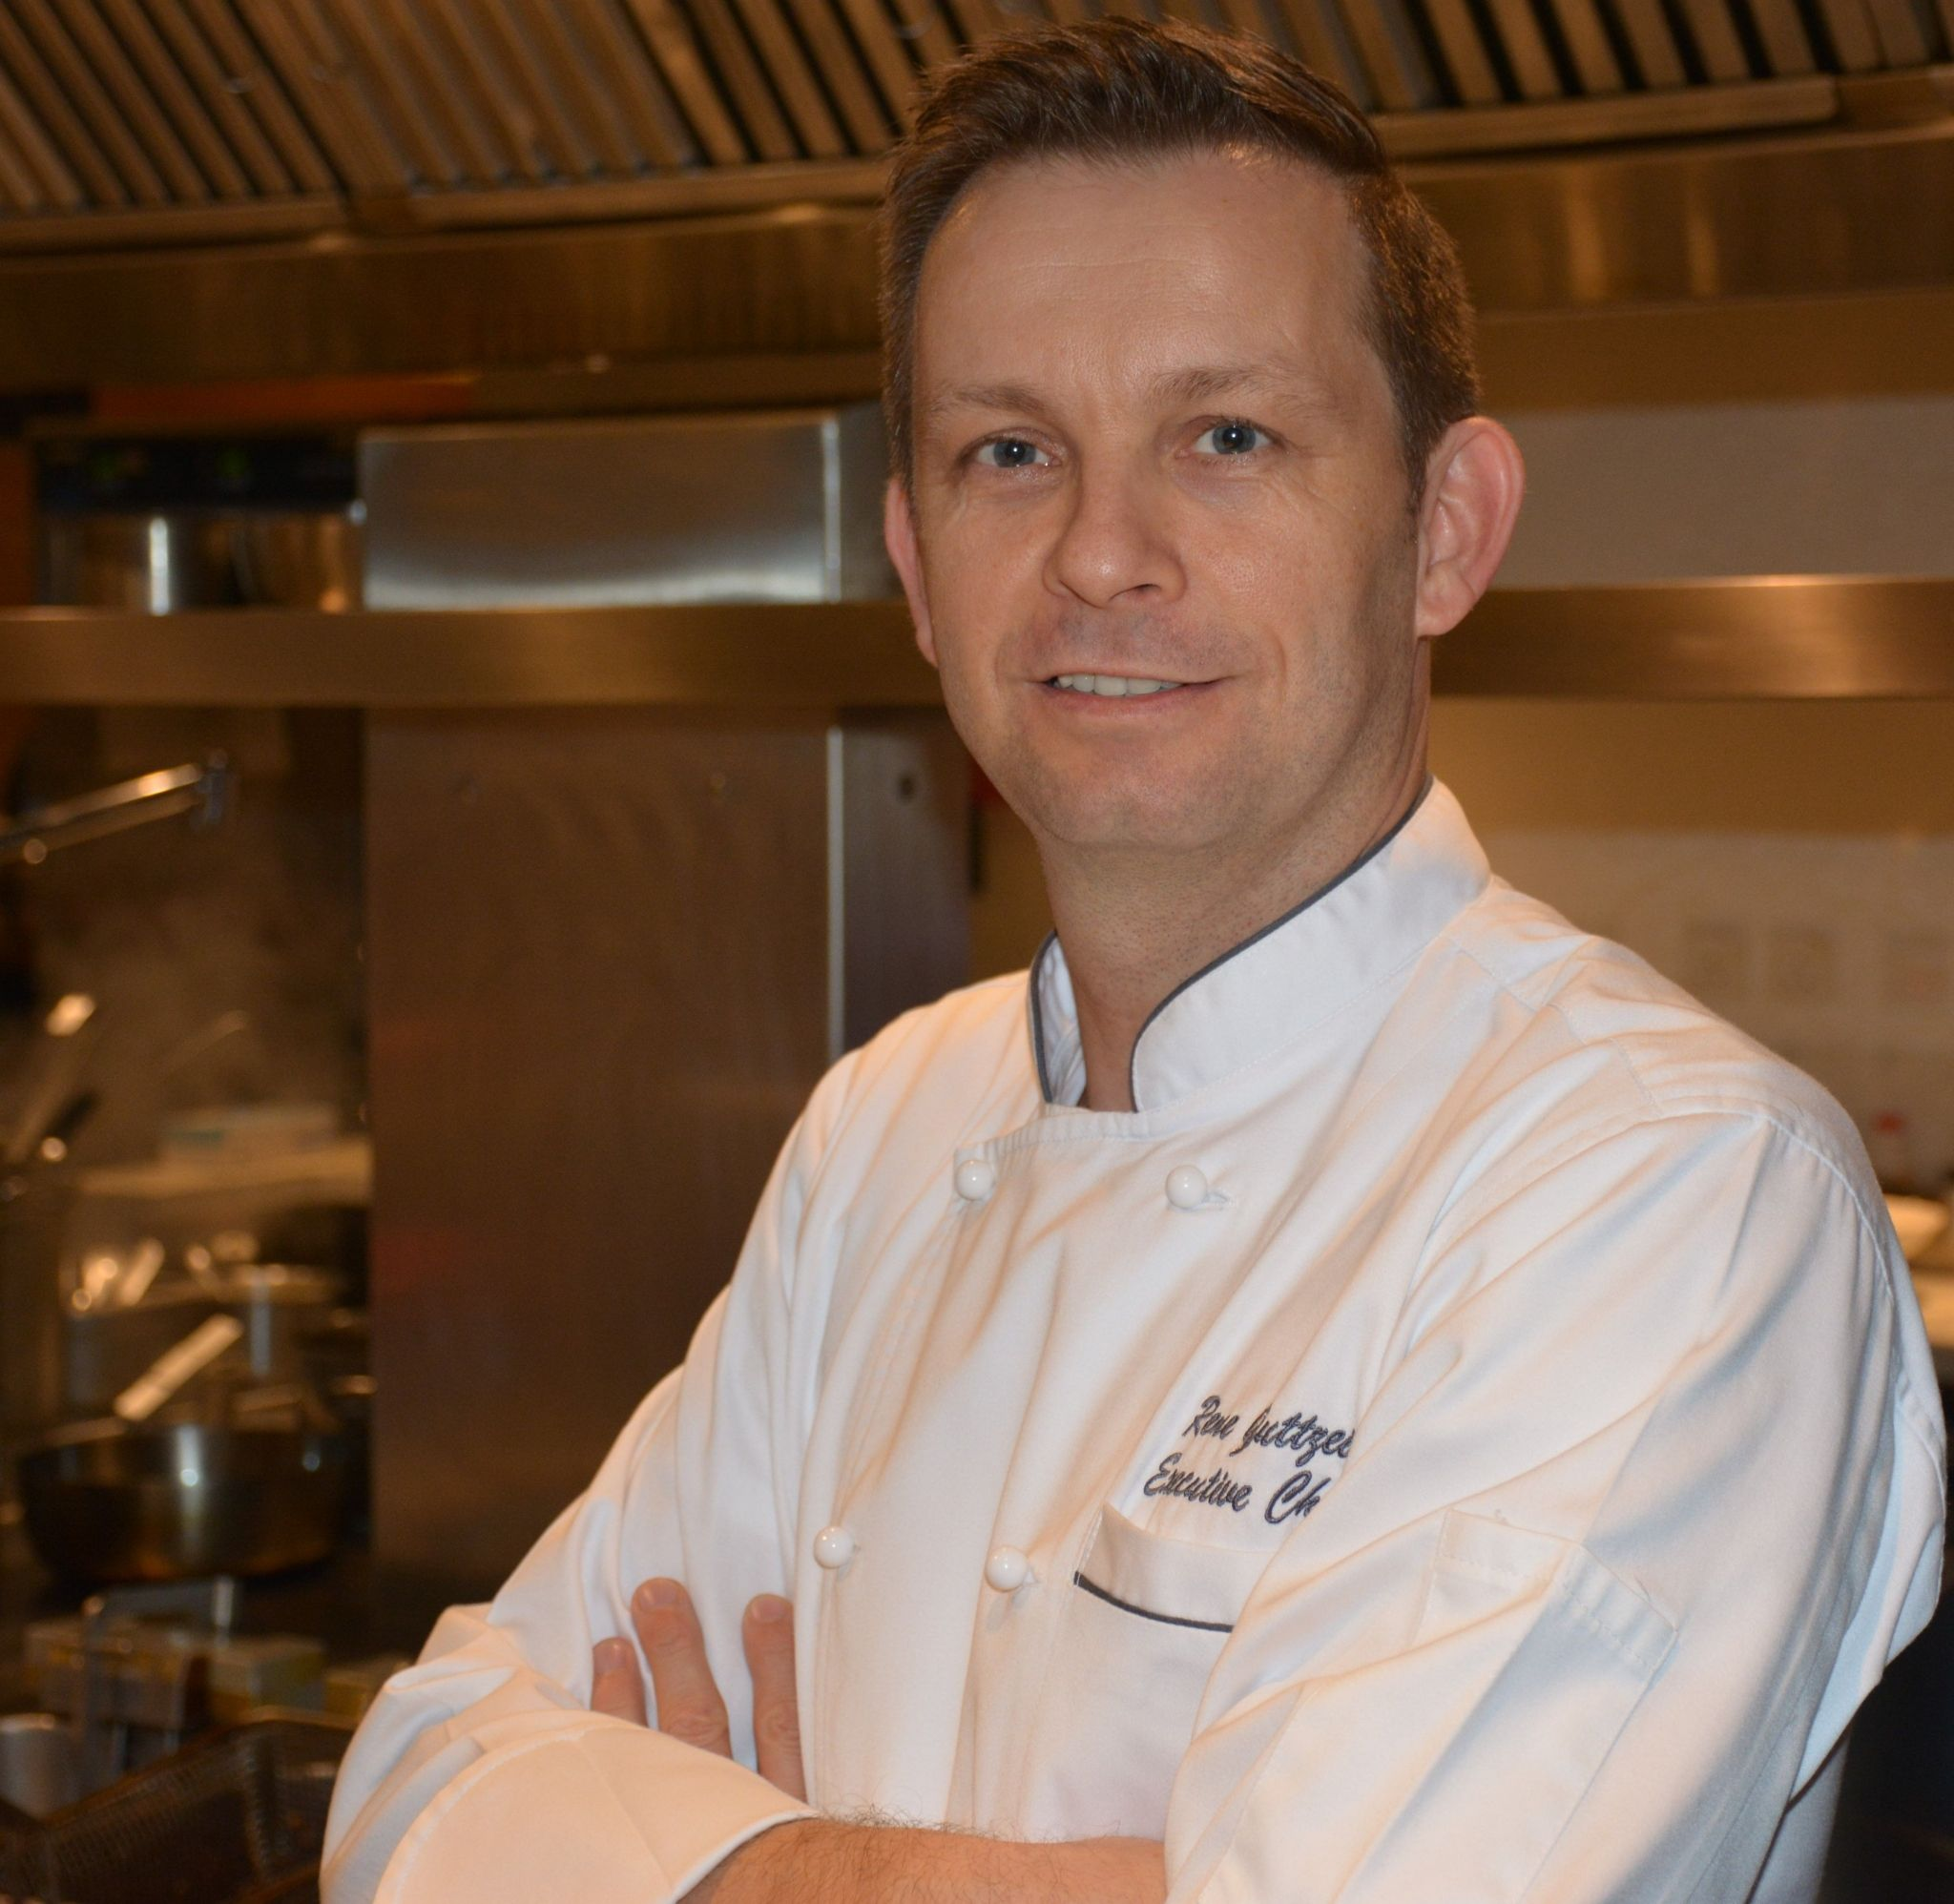 Meet the Chef: Rene Guttzeit